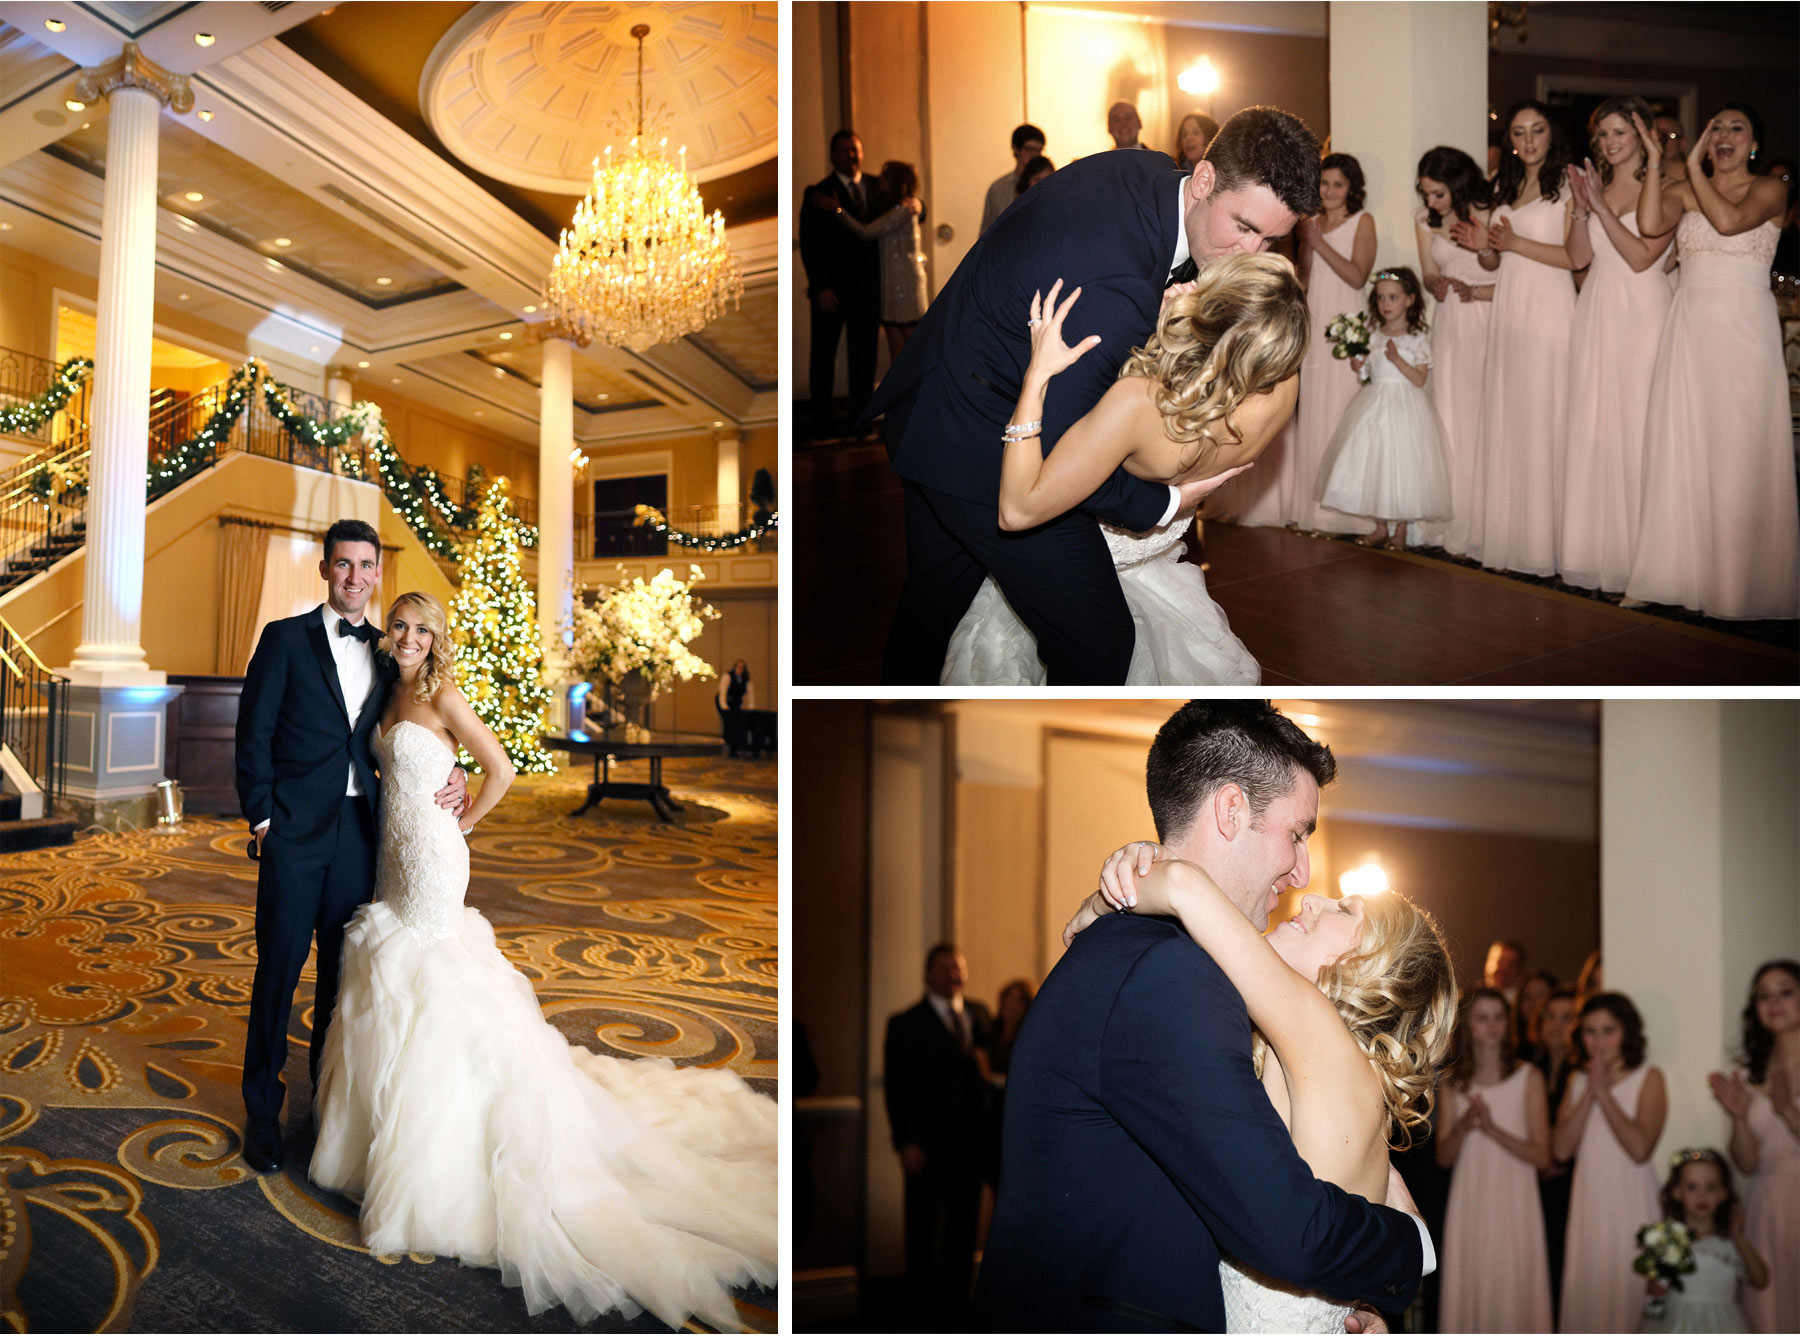 20-Somerset-New-Jersey-Wedding-Photographer-by-Andrew-Vick-Photography-Winter-Palace-At-Somerset-Park-Reception-Bride-Groom-Kiss-Bridesmaids-Flower-Girl-Dance-Dip-Alexia-and-Justin.jpg